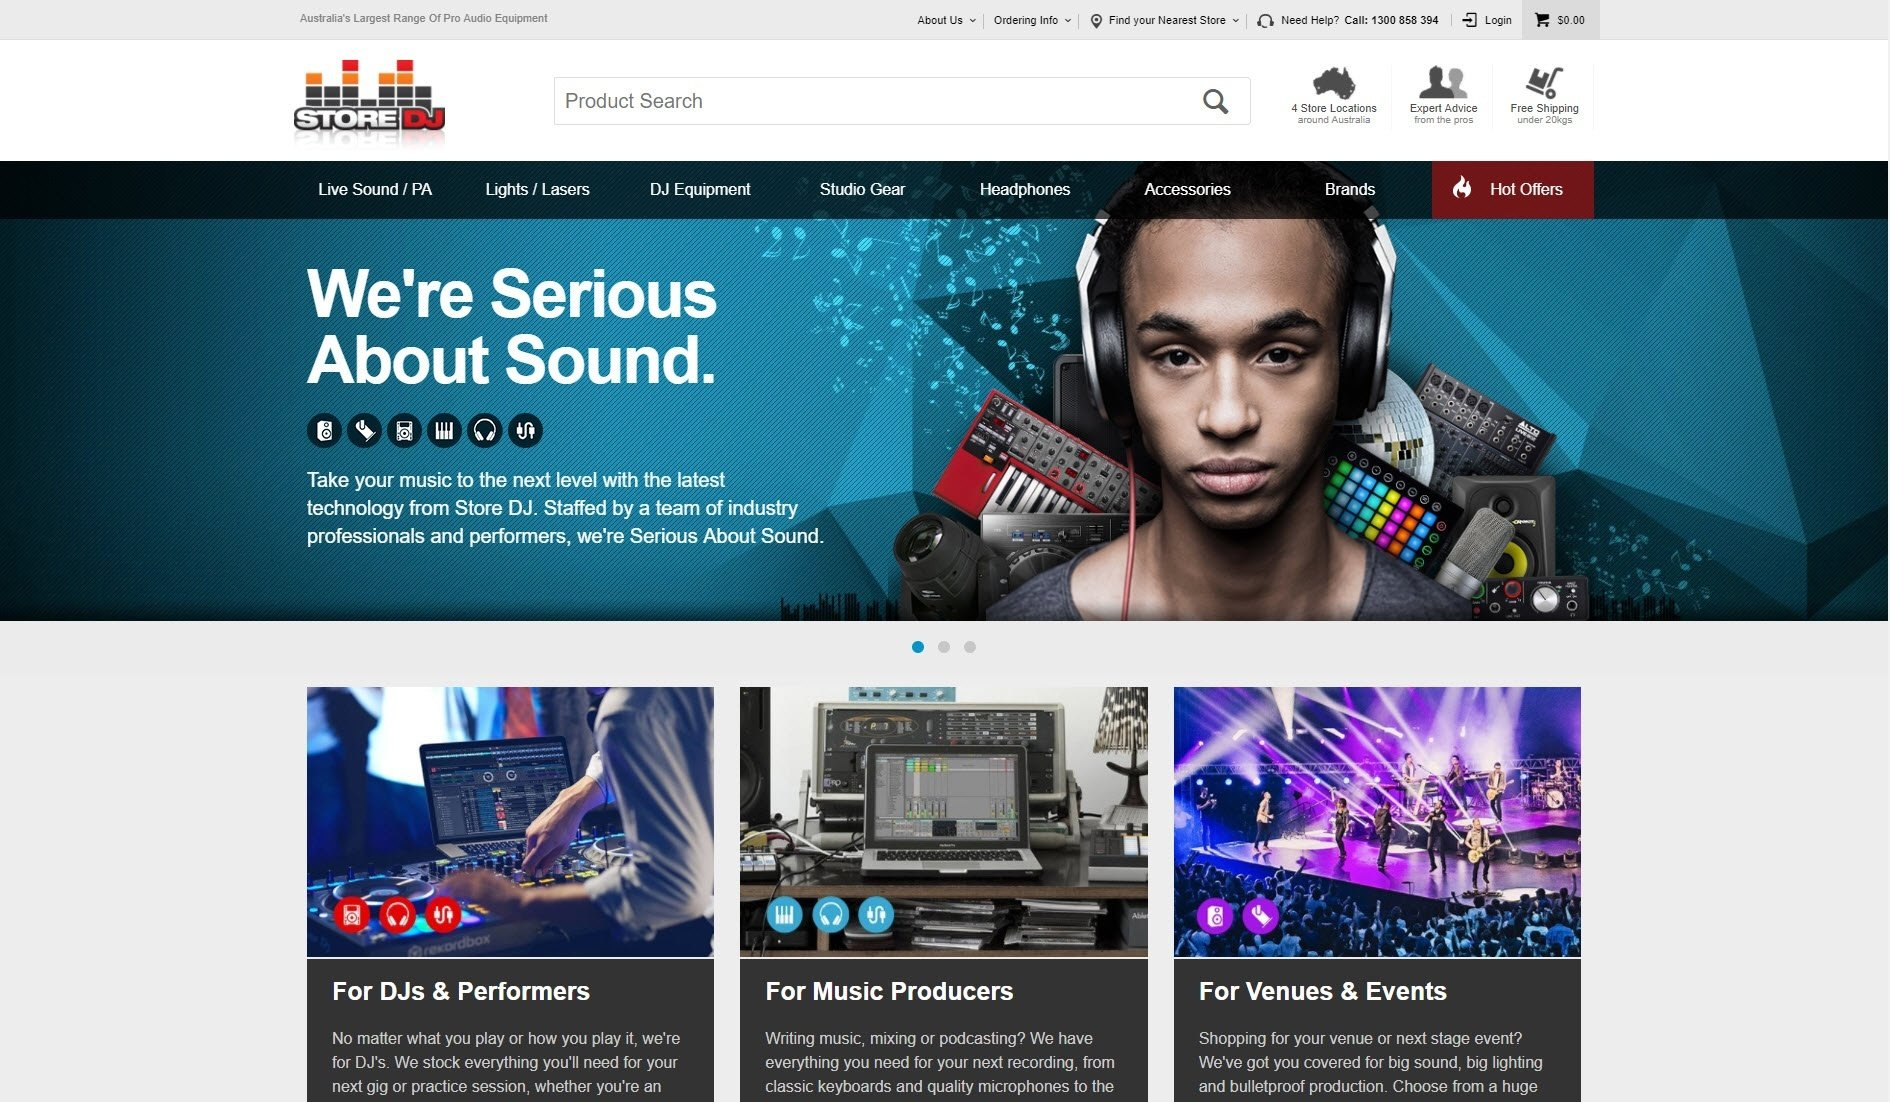 Store DJ Home Page